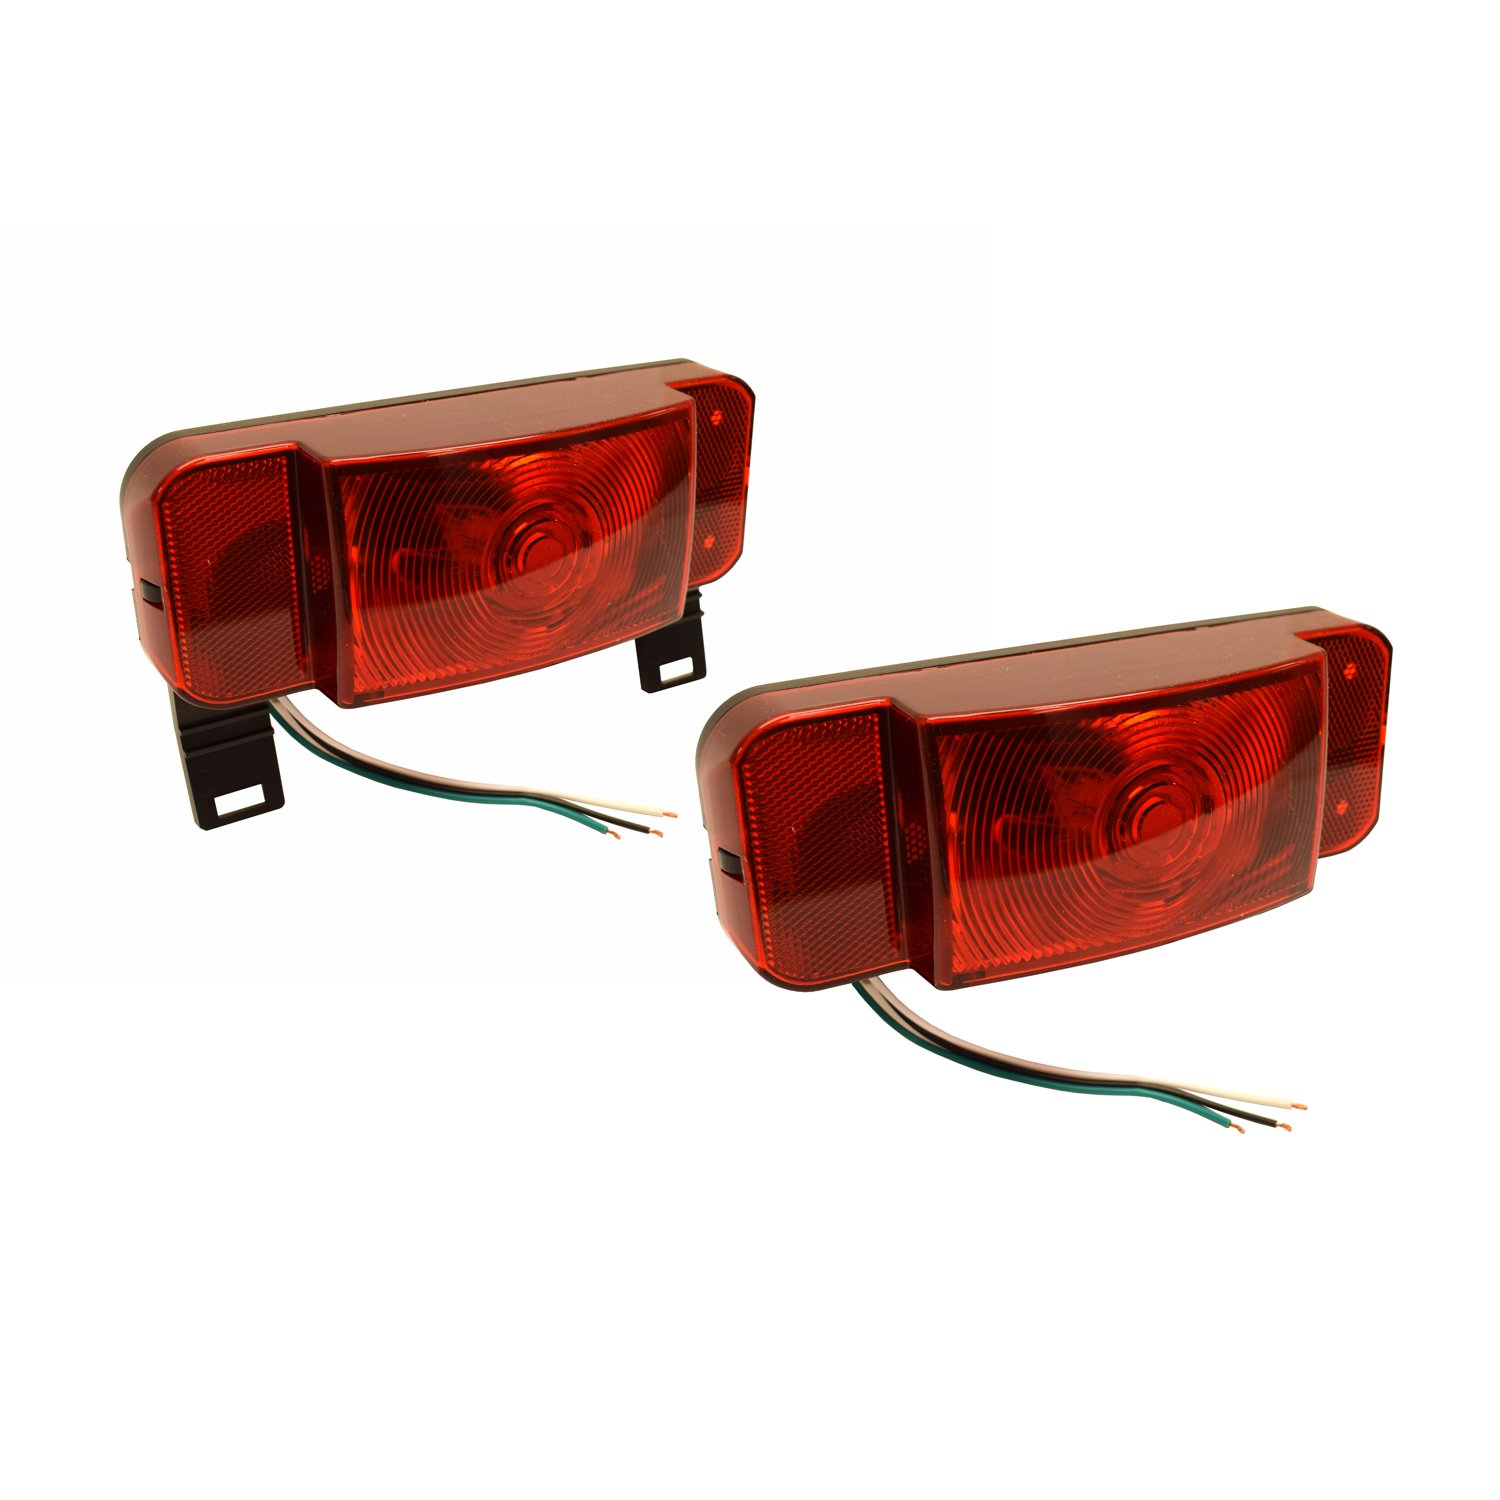 Optronics One L.E.D. Low Profile Combination RV Tail Lights (RVSTLB6061-KIT) Pair by Optronics